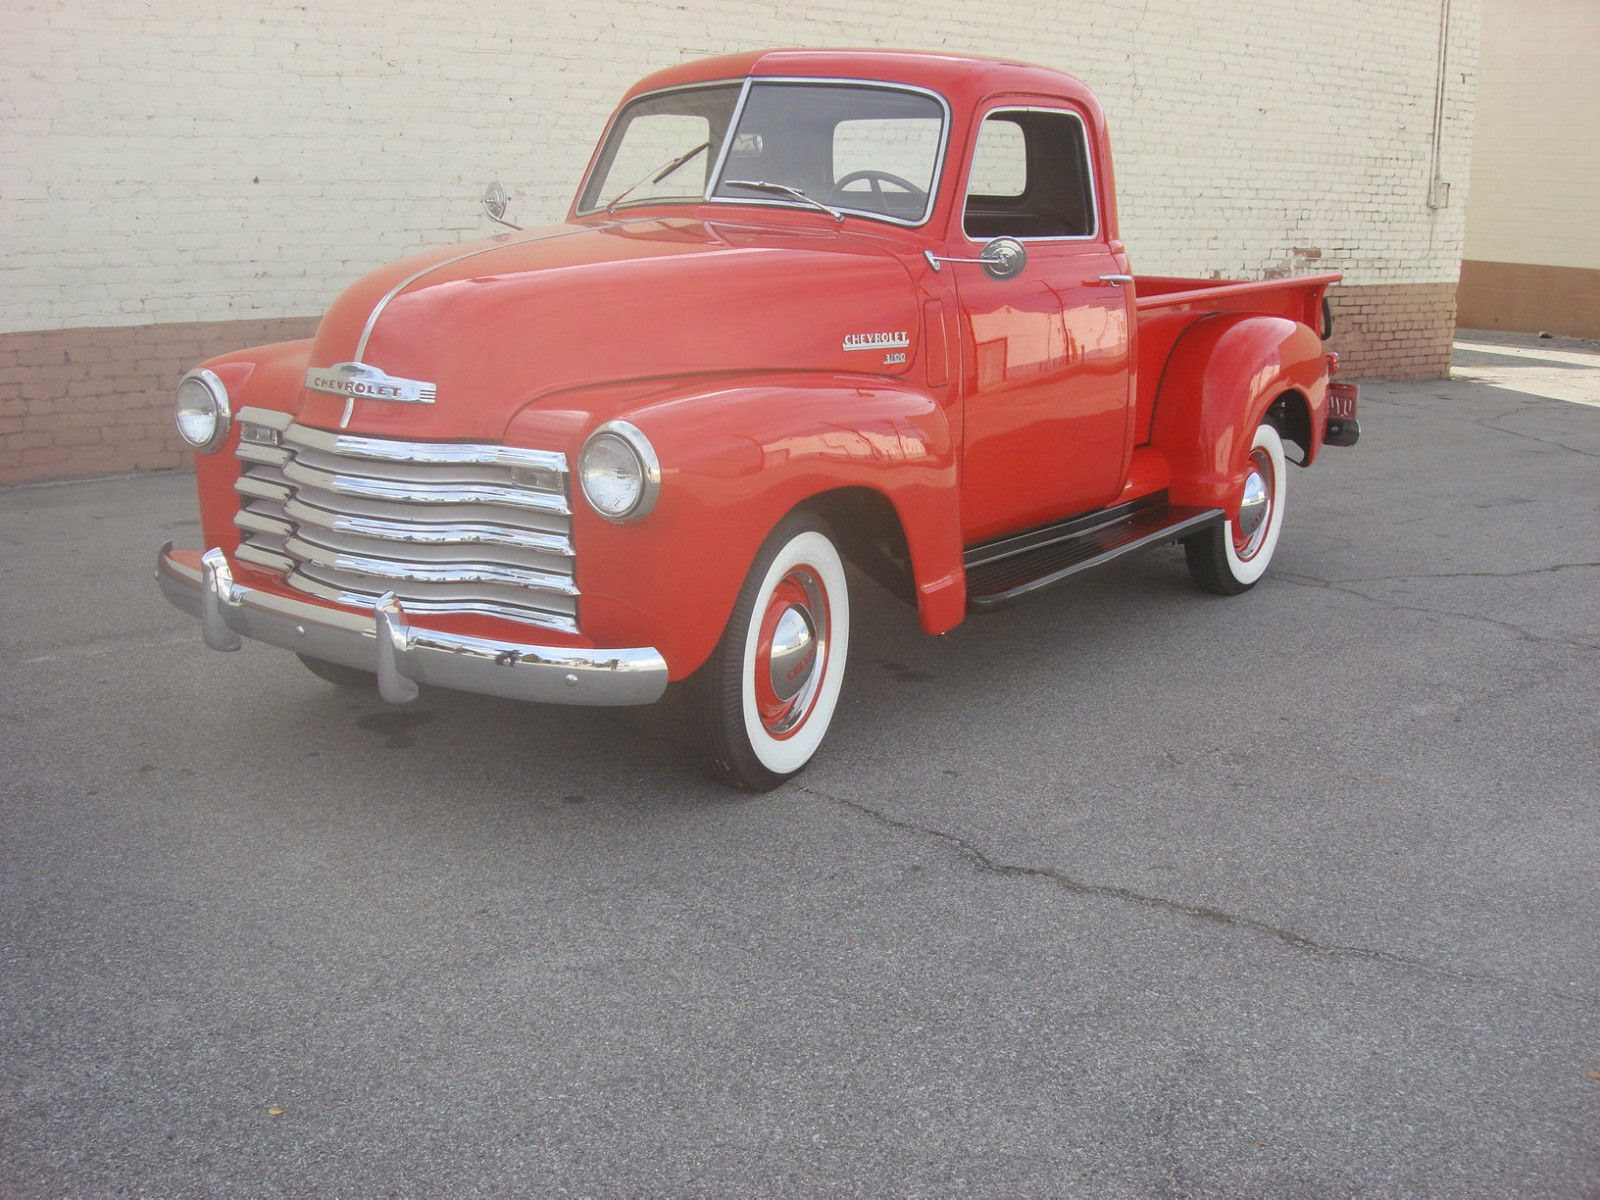 All American Classic Cars: 1950 Chevrolet 3100 Pickup Truck1950 Chevy Pickup Engine